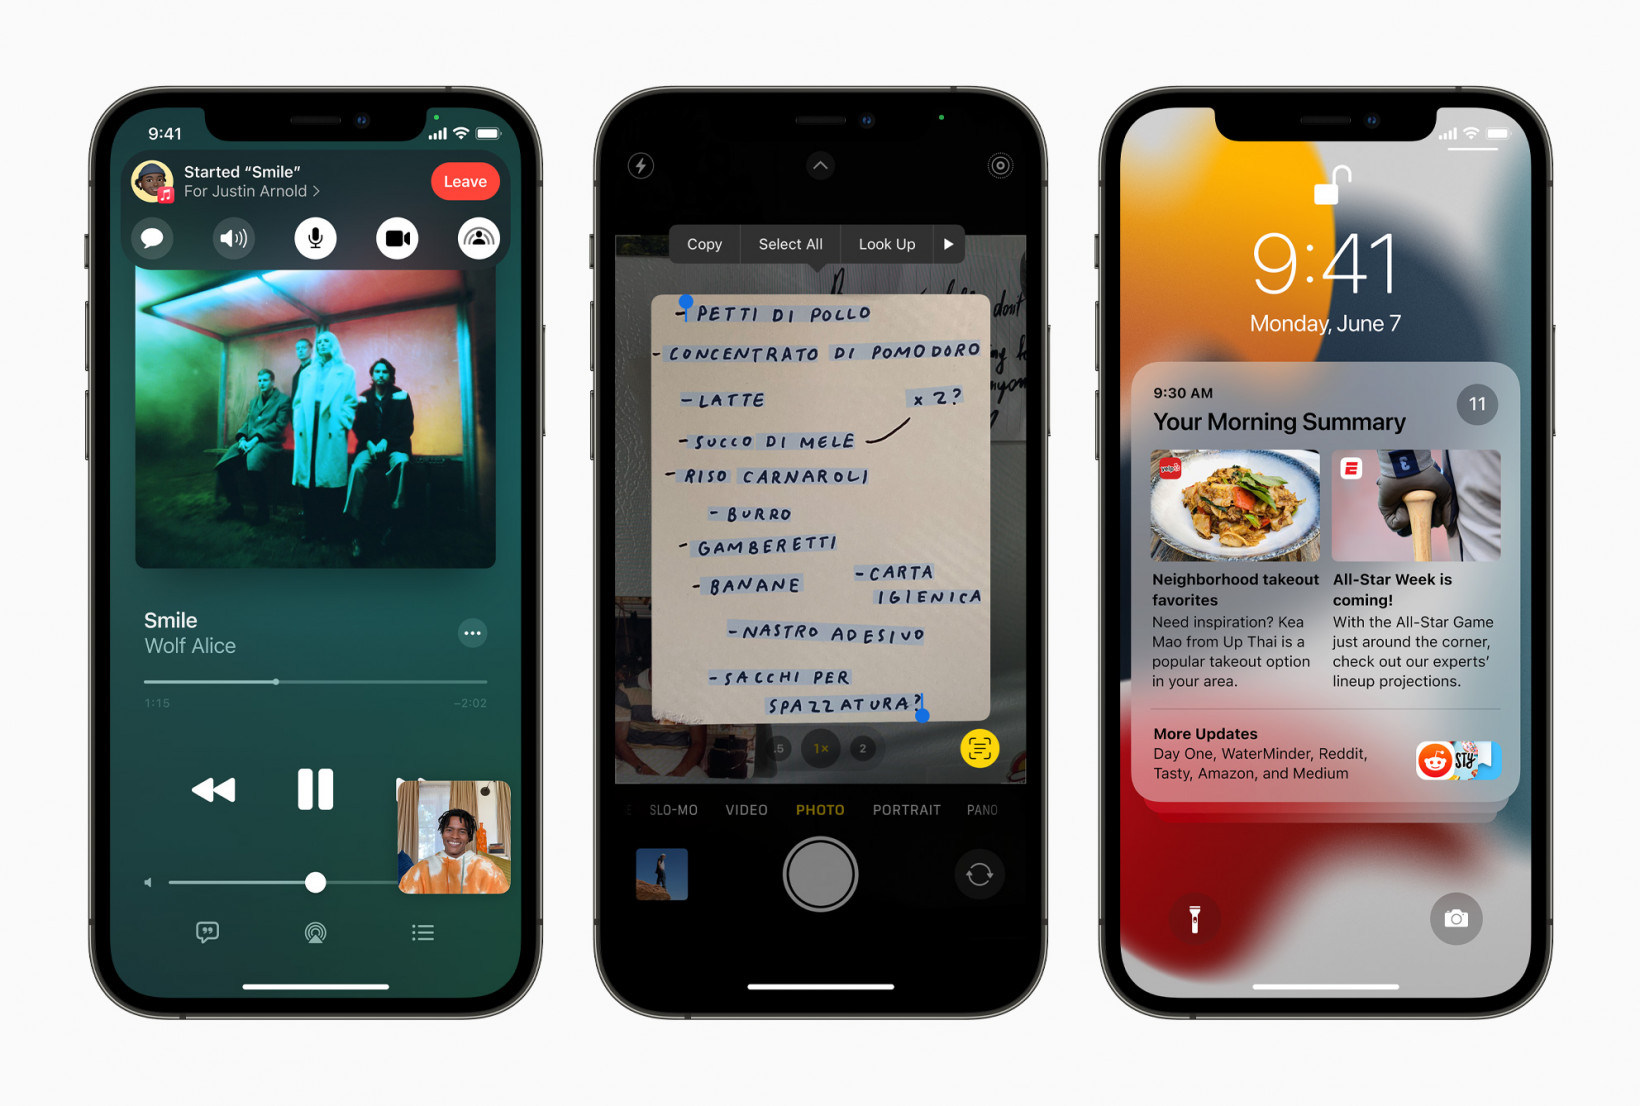 New features coming to iOS 15, including shareplay in FaceTime, Live Text, and the new notifications design